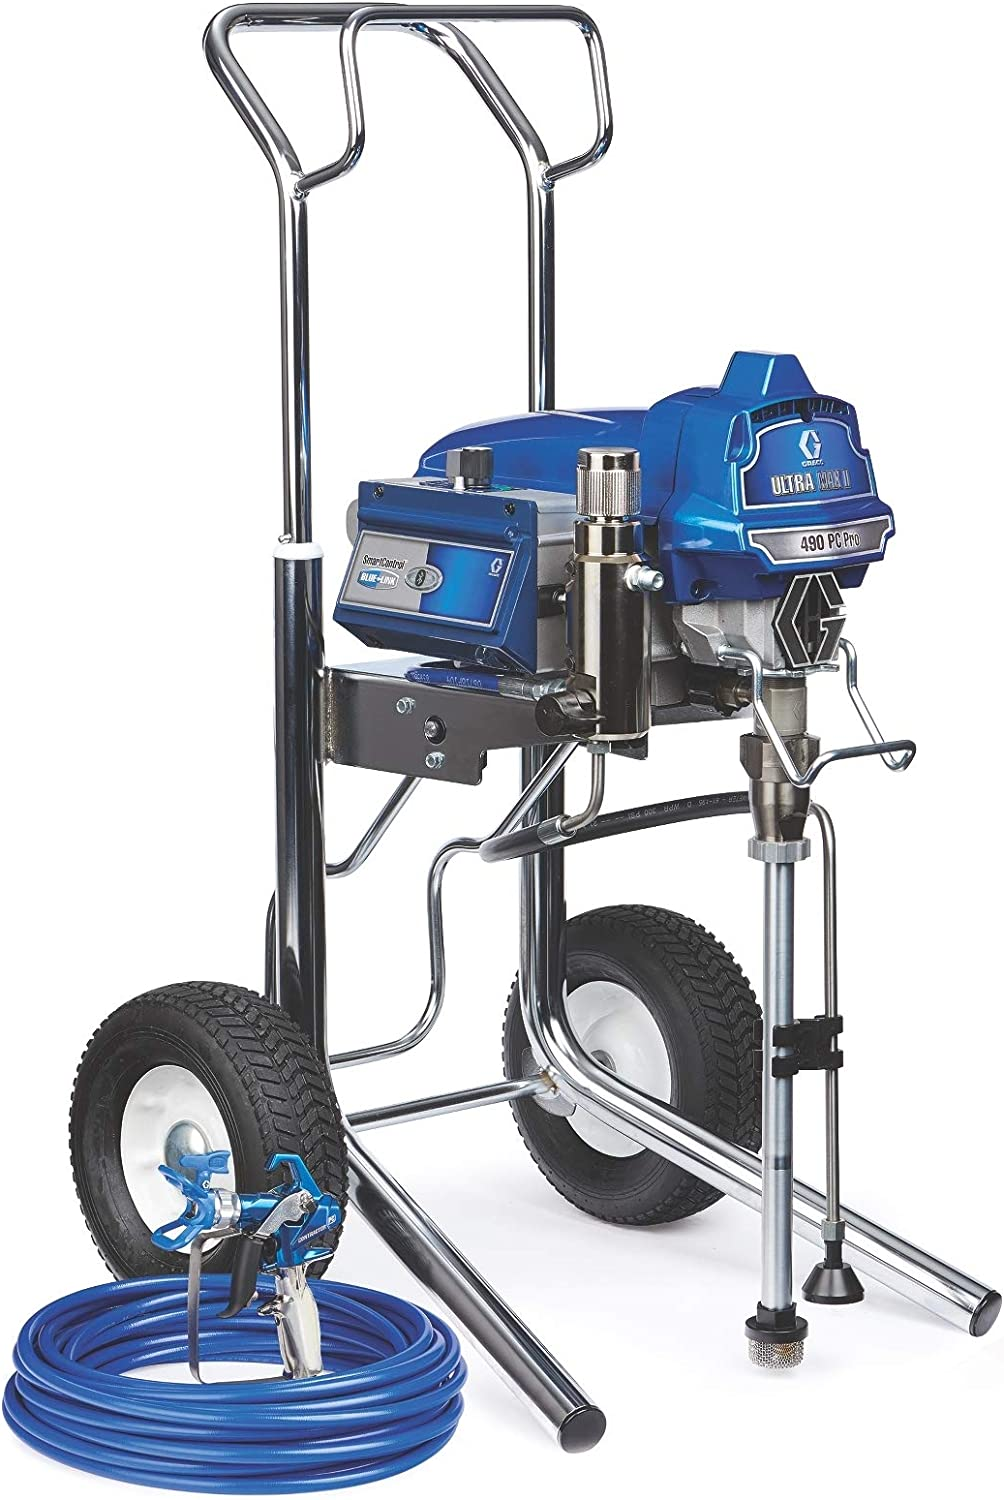 Spring new work one after another OFFer Graco Ultra Max II 490 PC Sprayer Pro Electric Hi Airless Paint